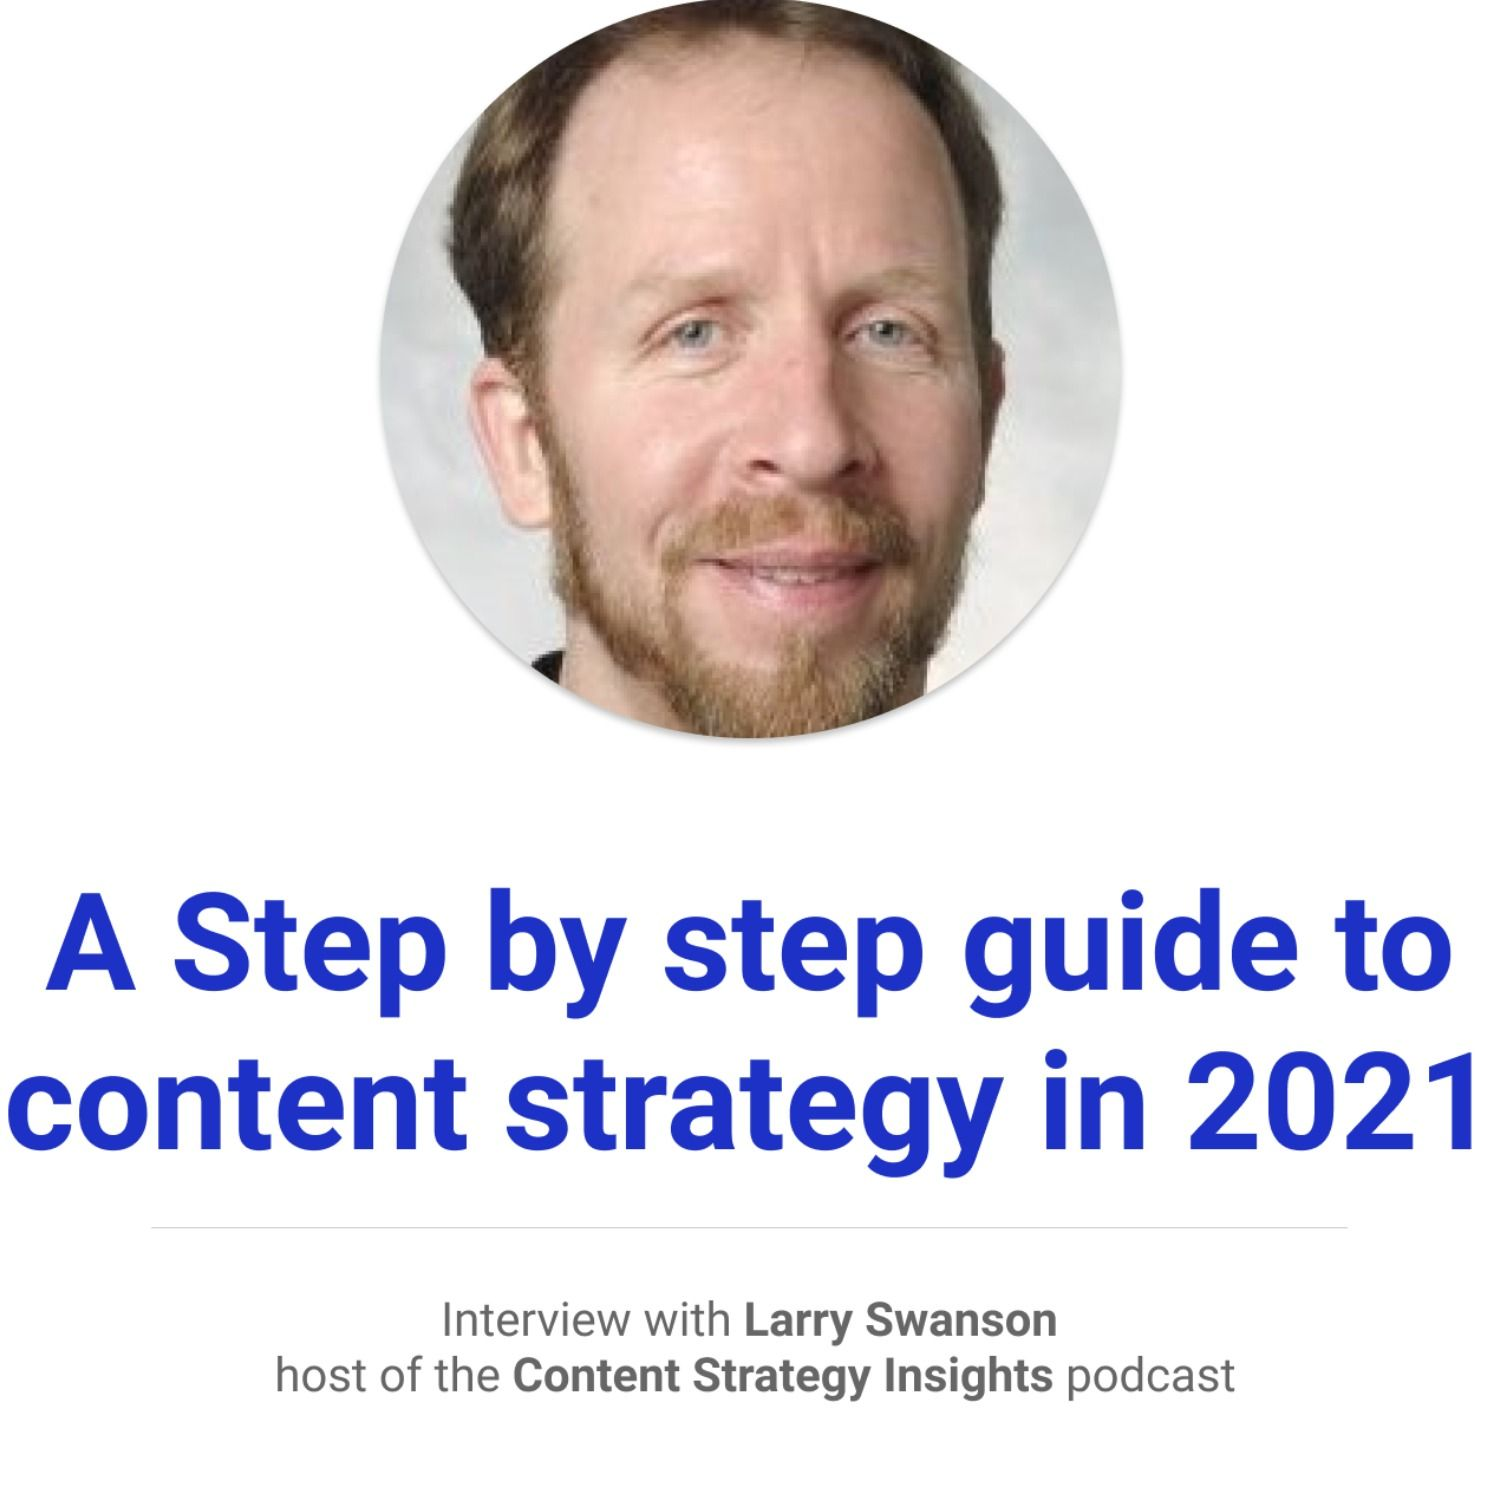 A Step by Step Guide to Content Strategy in 2021